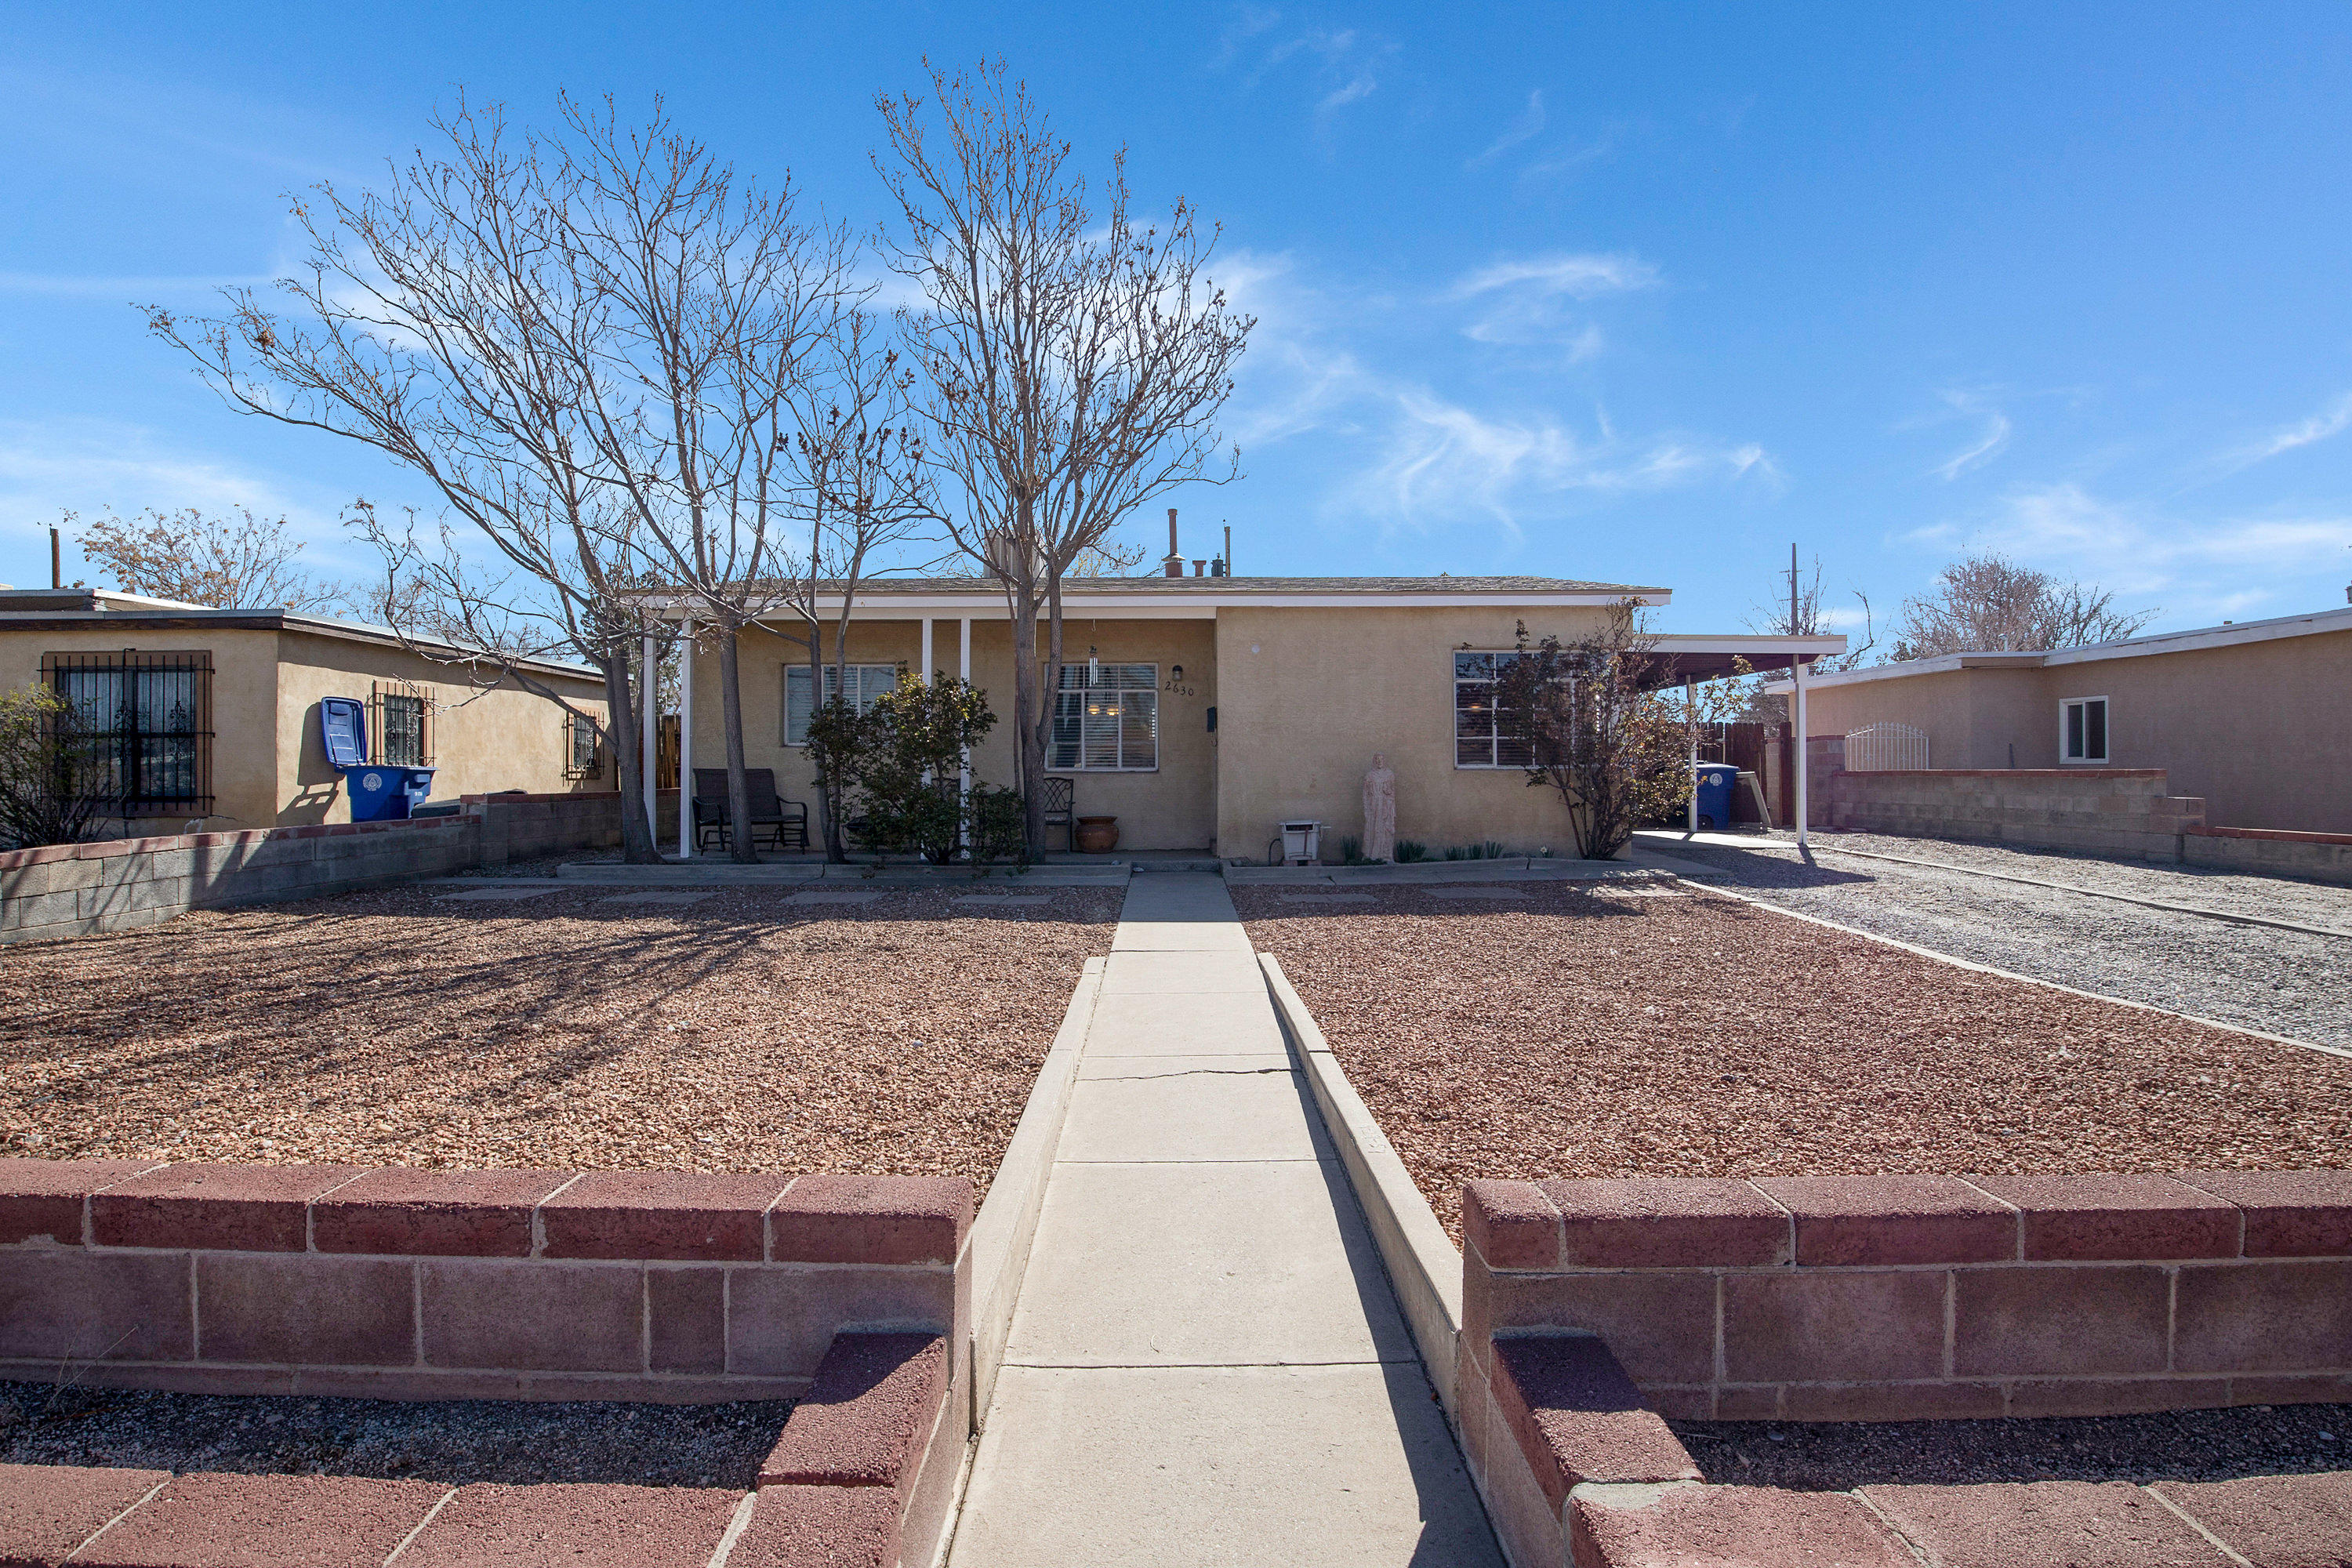 Lovely charming home is looking for a new homeowner to make happy!  The home showcases a spacious master bedroom that feels open and inviting.  Enjoy the freshly painted master bath and tastefully updated guest bathroom.  The kitchen flows well and lends itself to your cooking adventures.  Backyard access is possible. Enjoy some peace of mind with the newly installed roof as of Nov 2020!  The roof warranty is transferable!  If that wasn't enough, the new swamp cooler will keep you cool in the summer months!  Don't delay, view today!